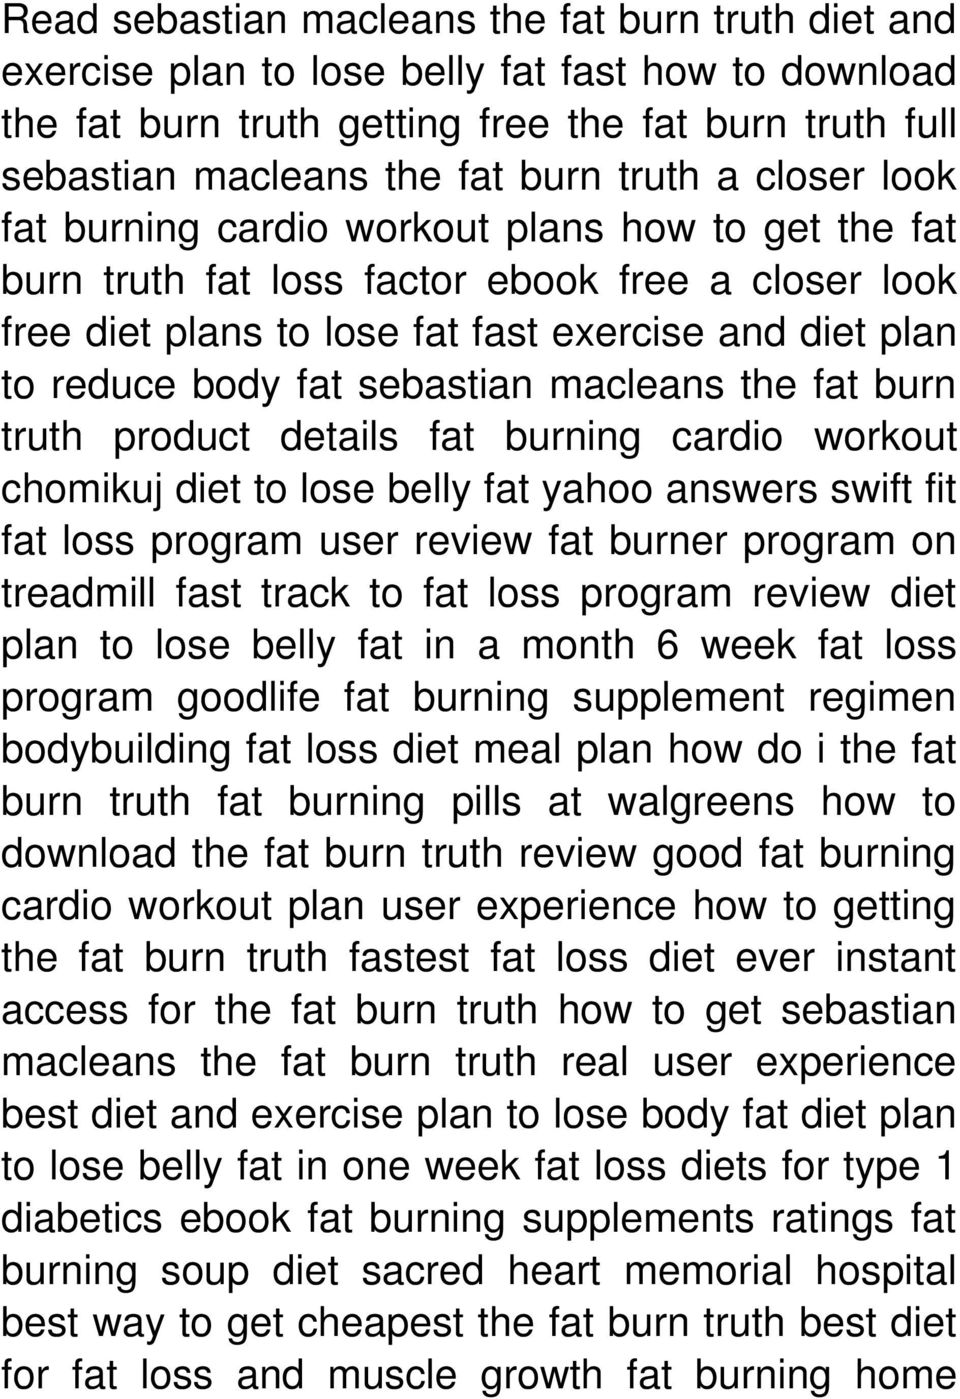 What burns belly fat yahoo